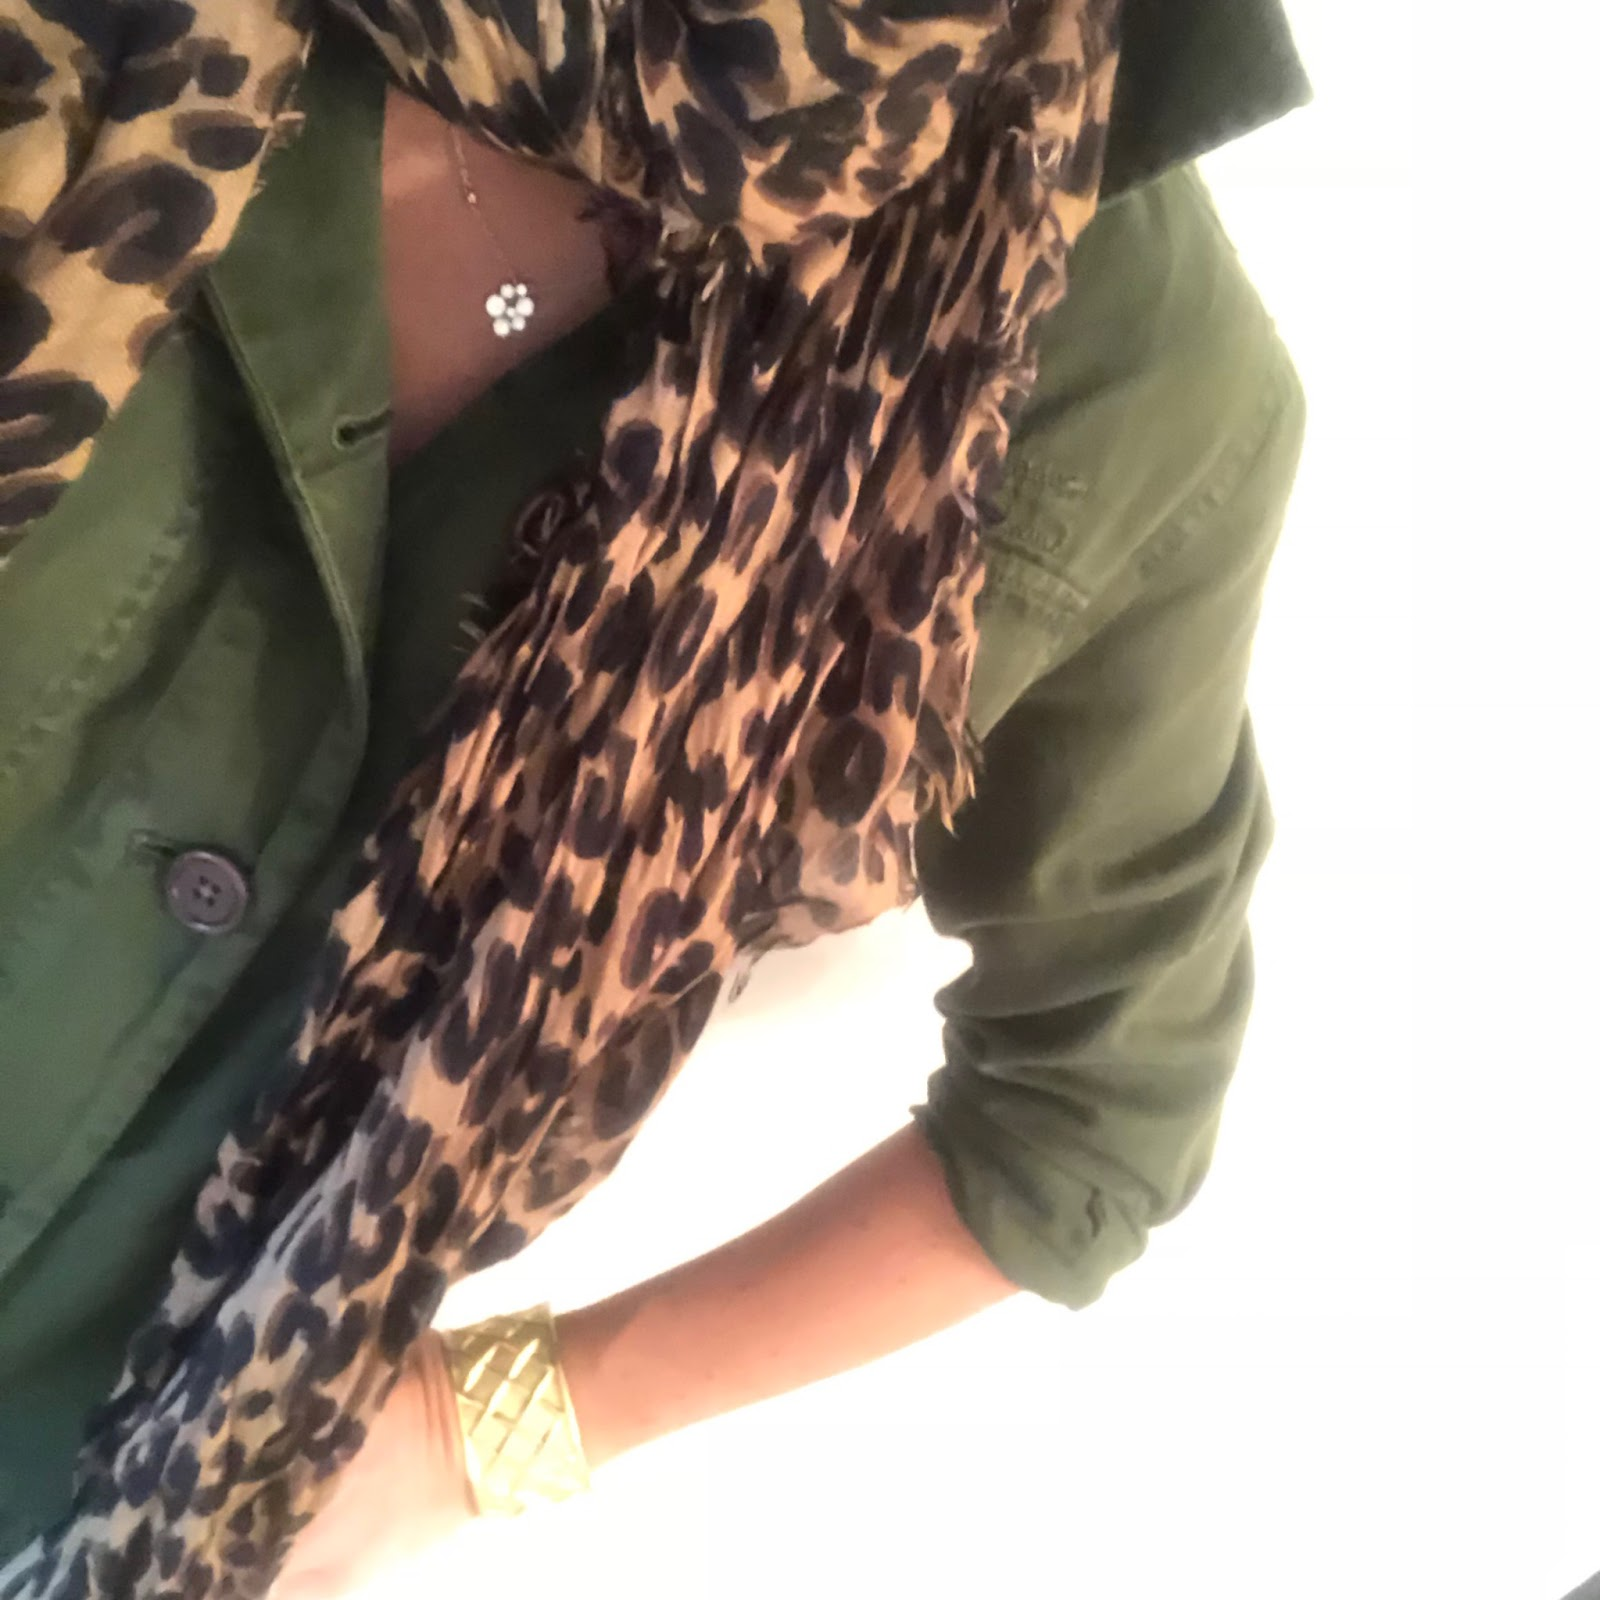 my midlife fashion, h&M baker cap, j crew military pleated shirt, j crew cropped sammie kick flare trousers, marks and spencer stiletto heel ankle boots, louis vuitton leopard print scarf